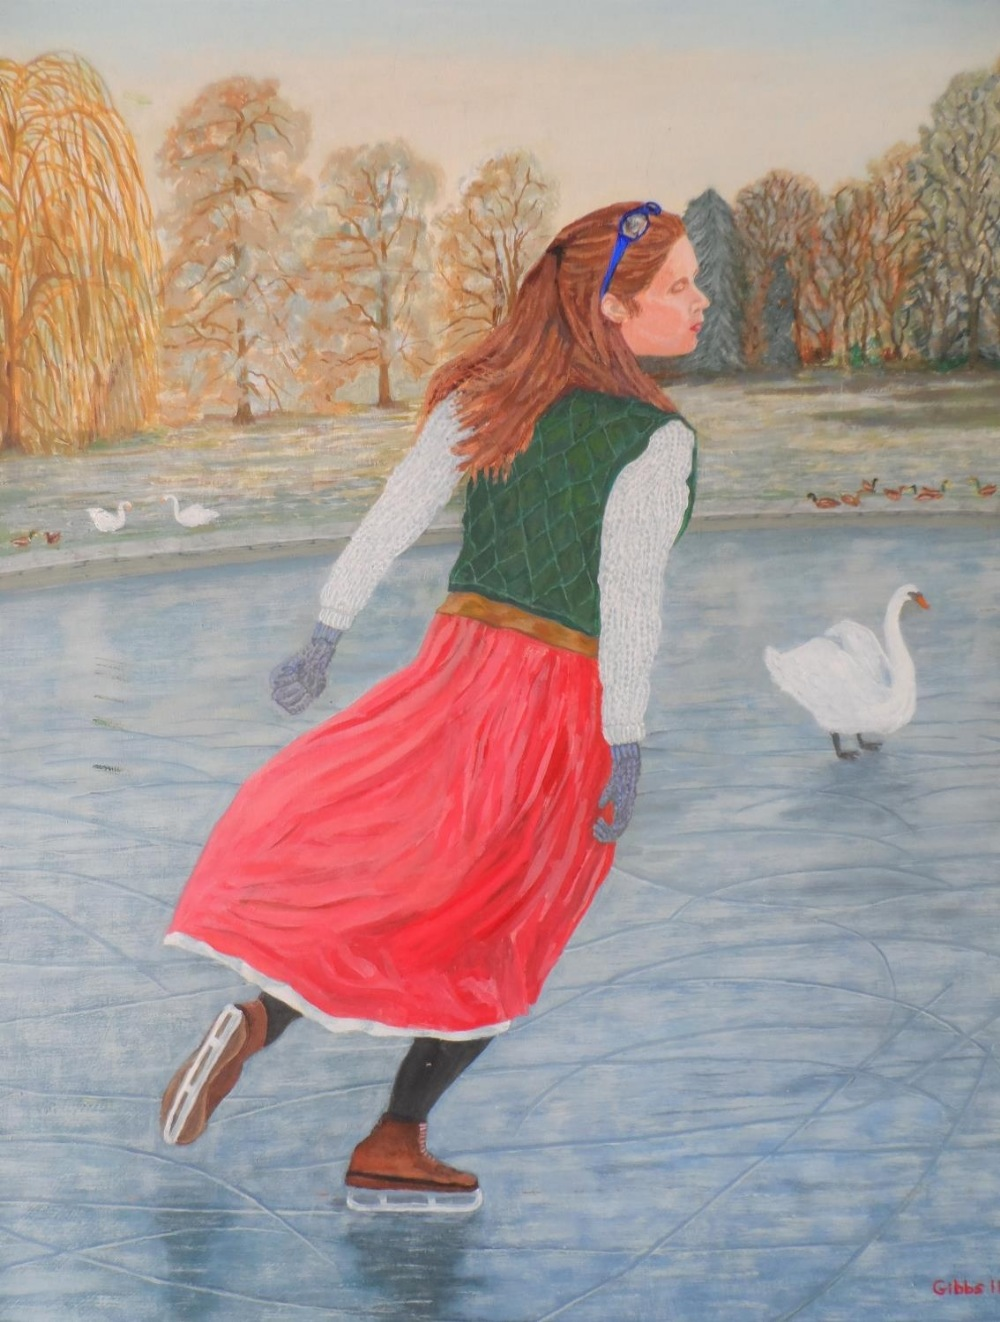 """Gerry Gibbs 2011 oil on board, """"The lone skater"""", wood framed, signed and dated, The oil measures 58"""